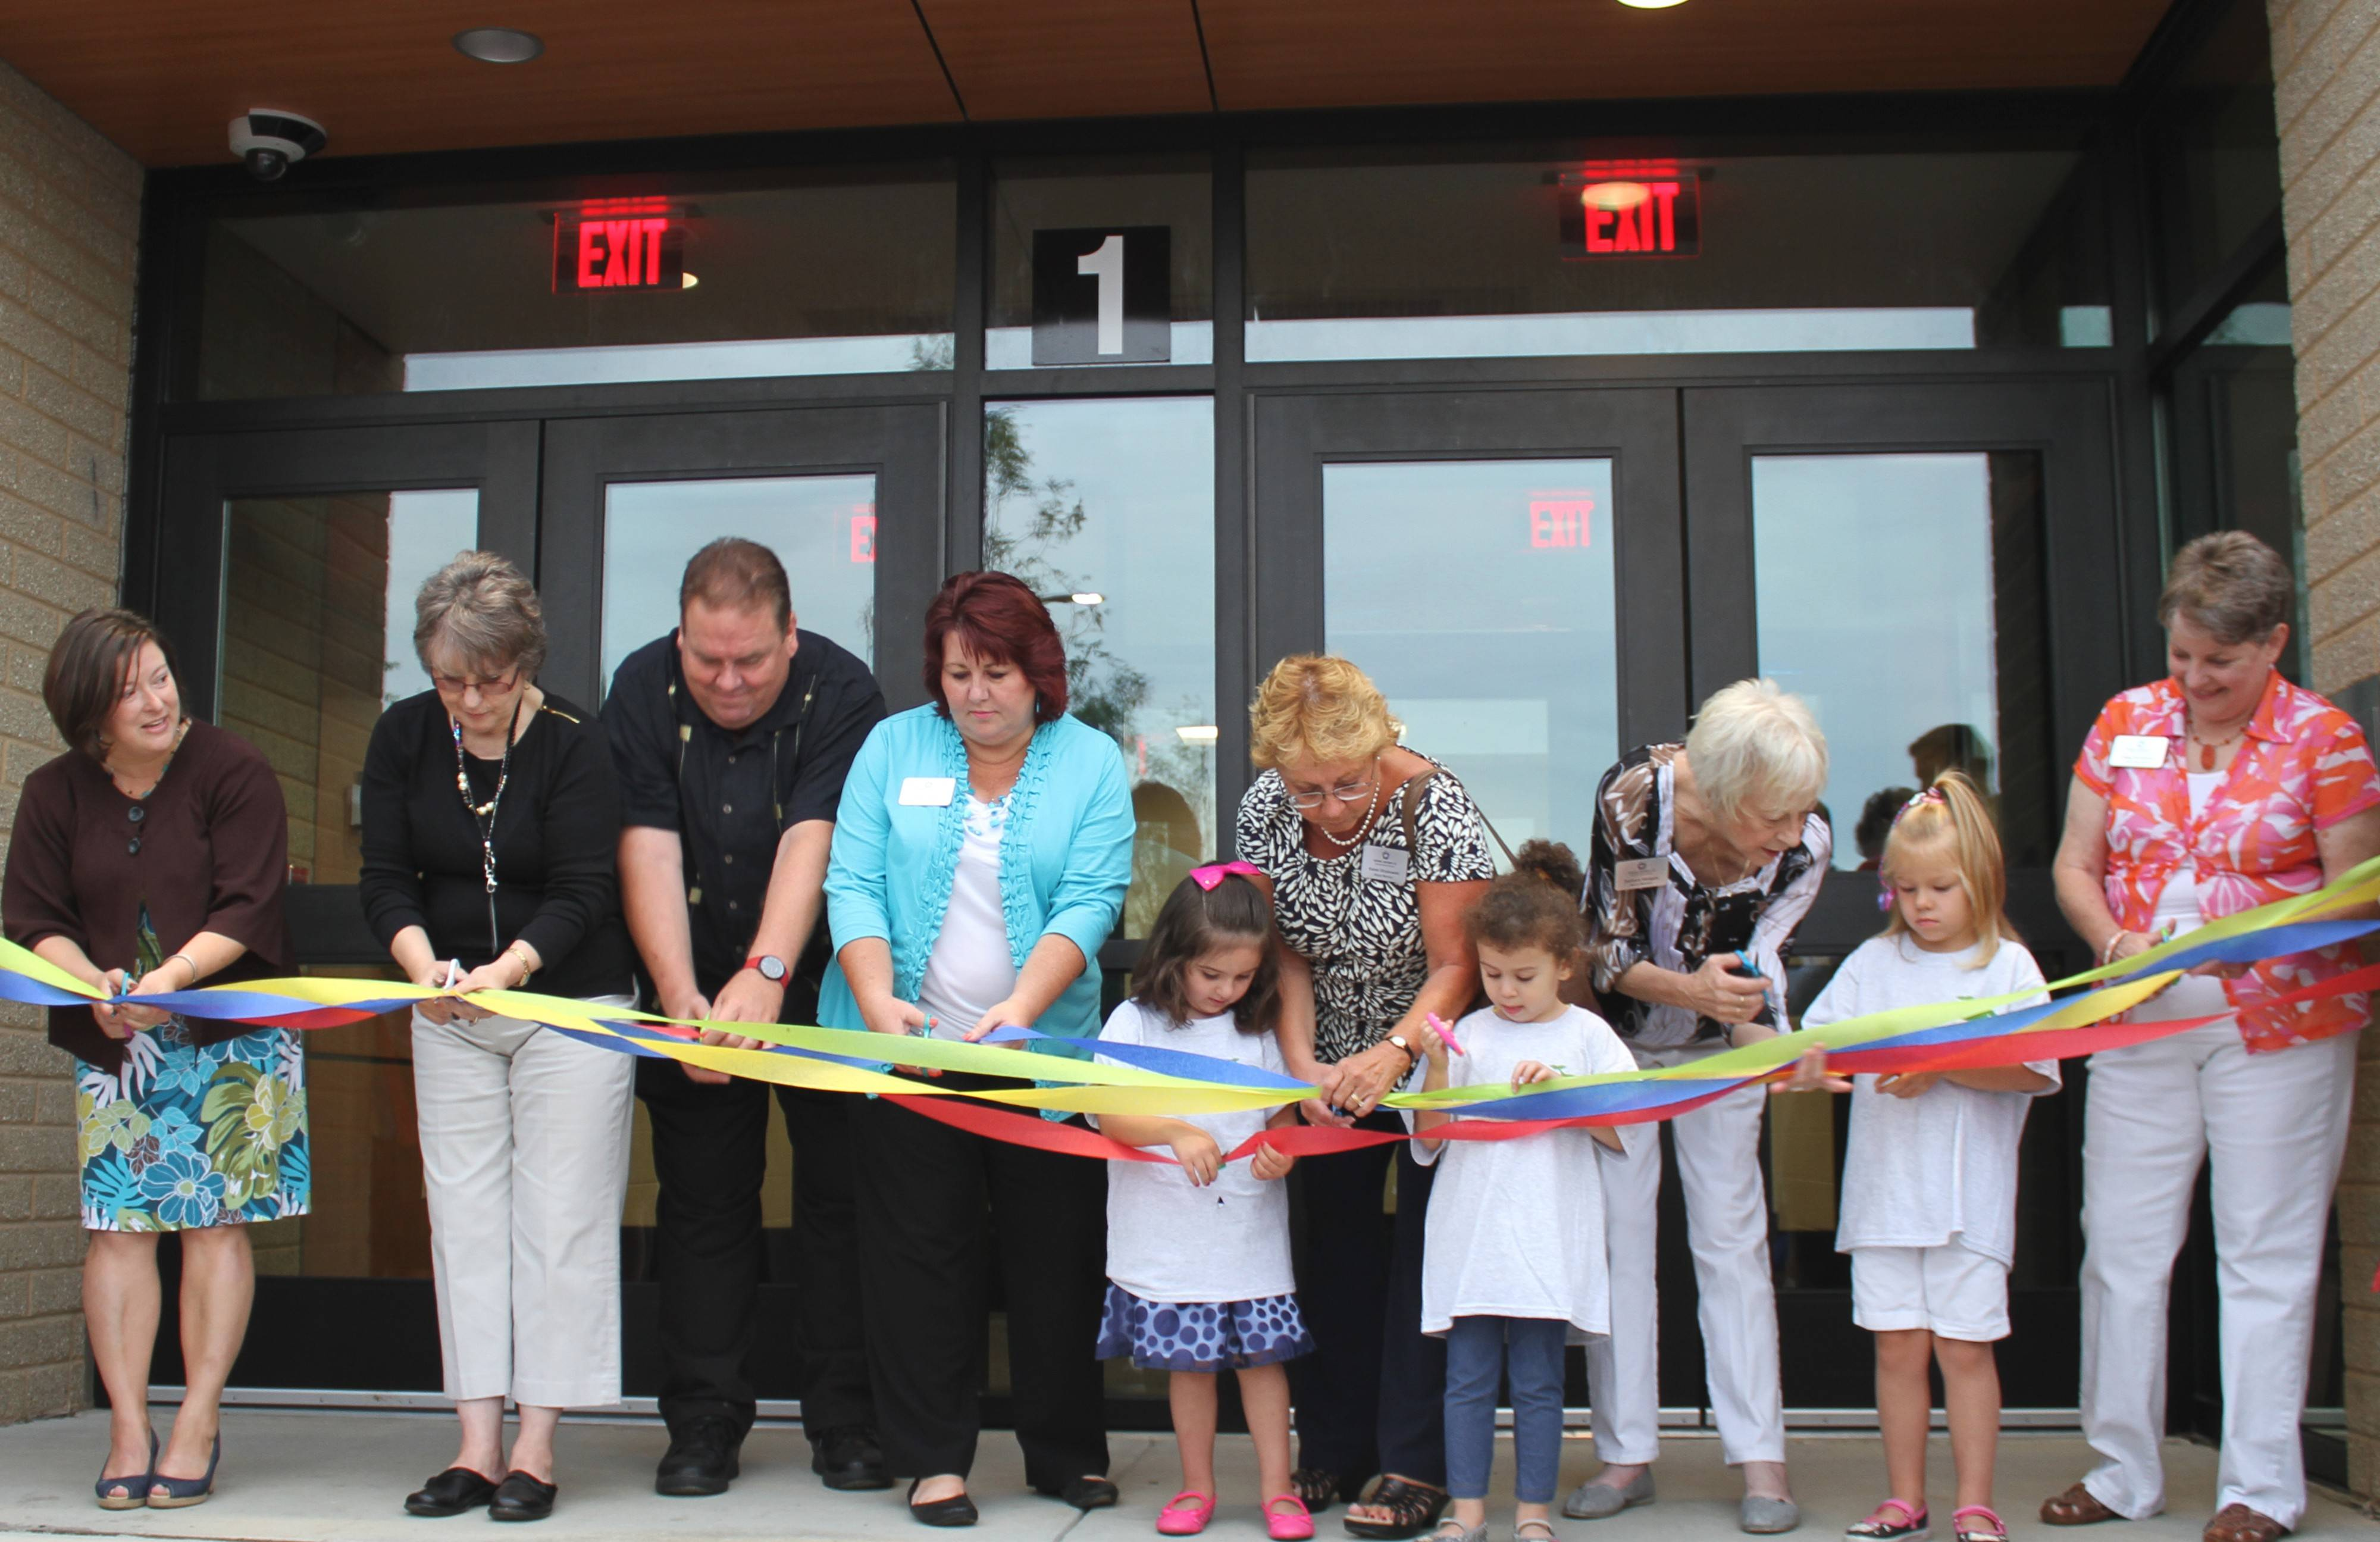 Students and school board members cut the ribbon to open Schaumburg Township Elementary District 54's new Early Learning Center on Thursday in Schaumburg.